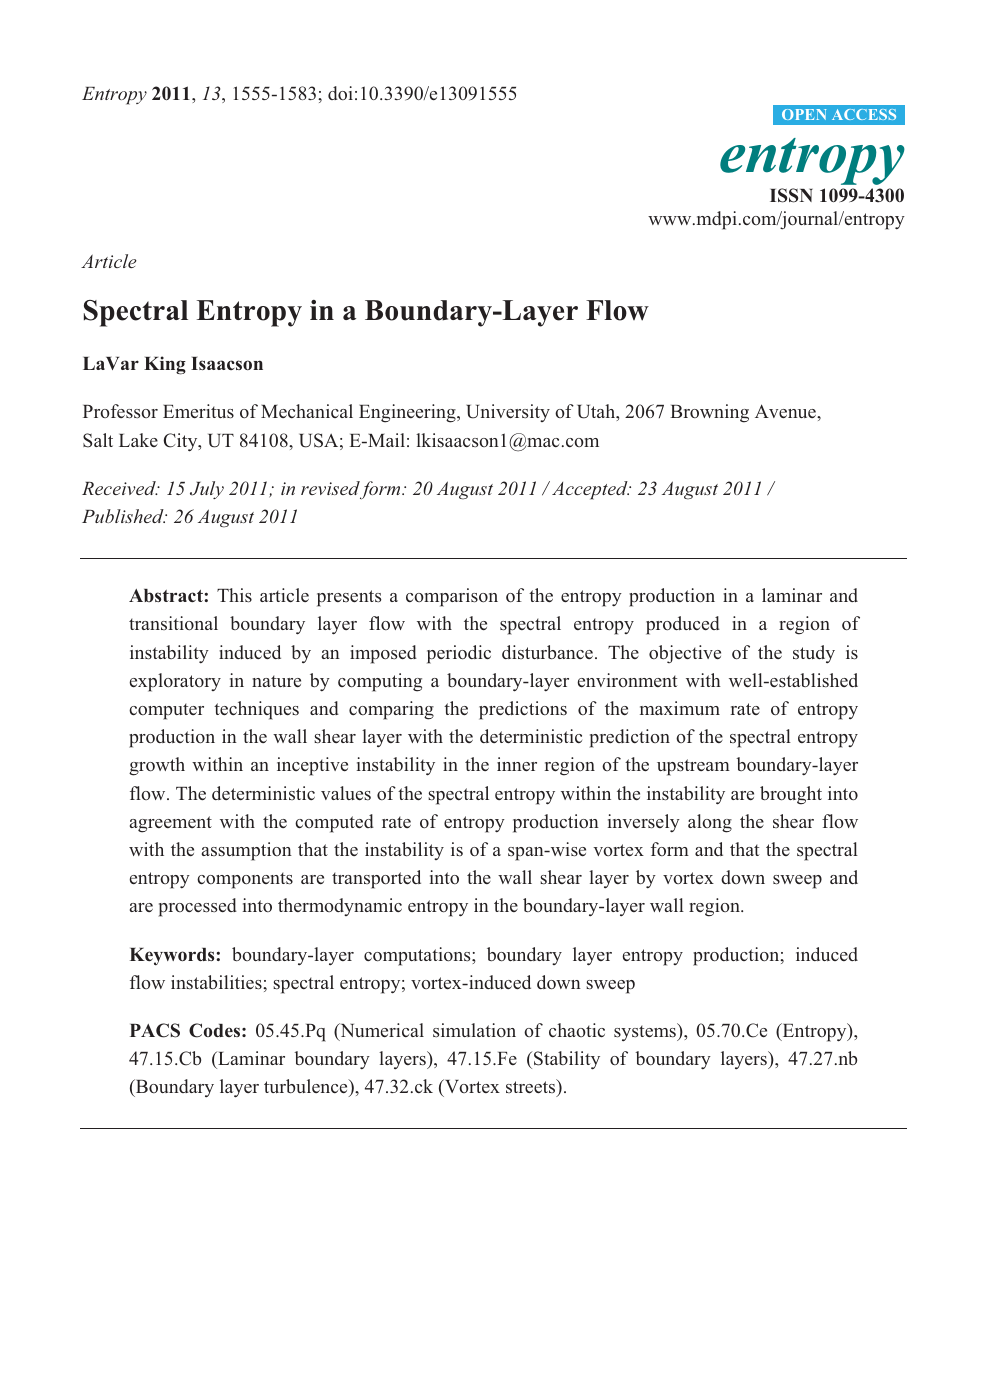 Spectral Entropy in a Boundary-Layer Flow – topic of research paper